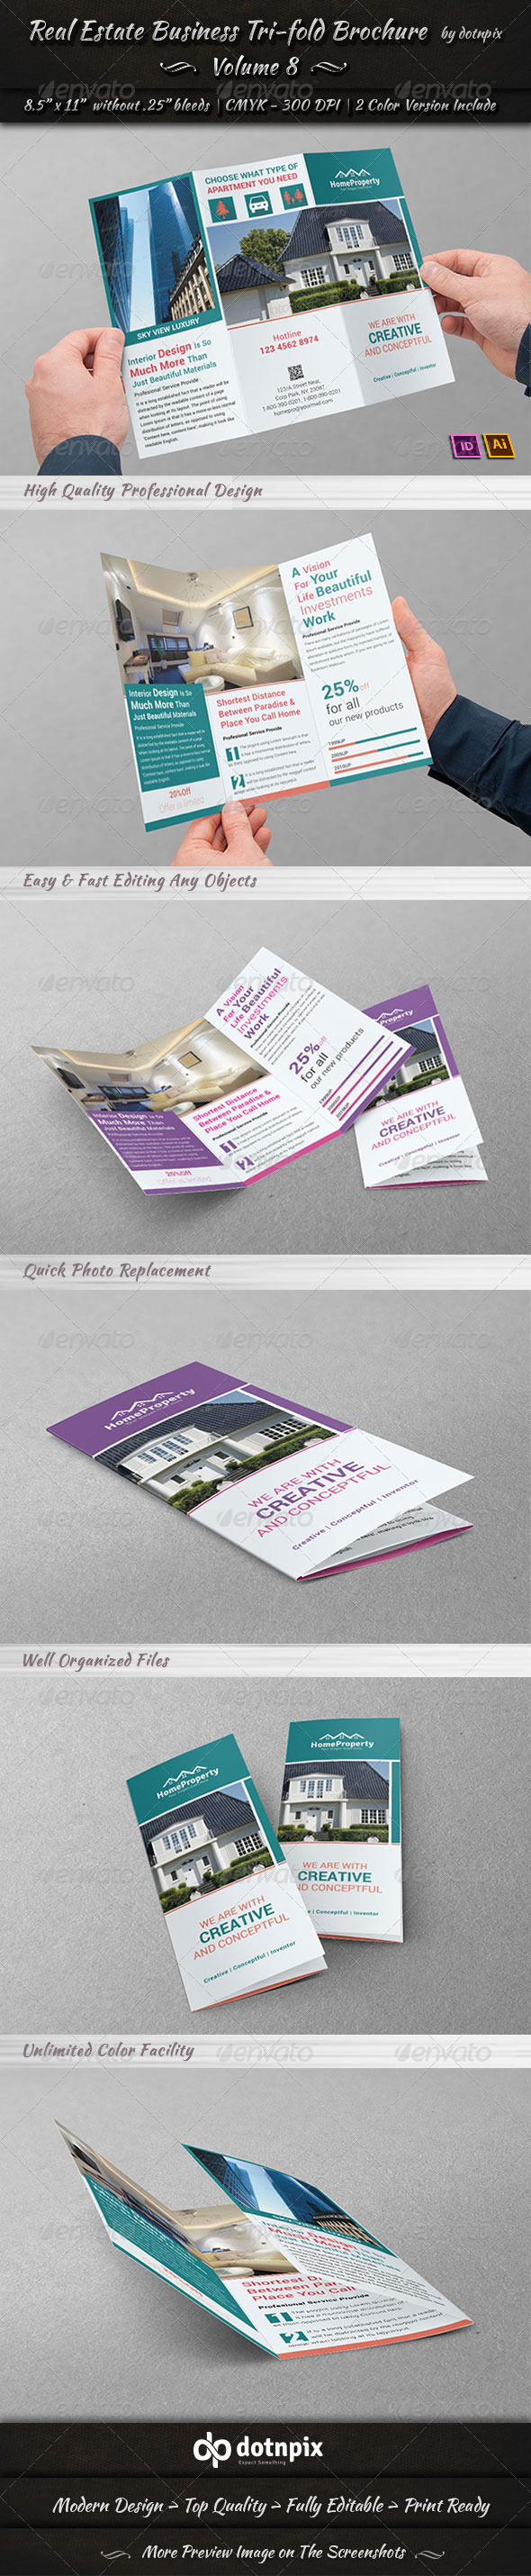 GraphicRiver Real Estate Business TriFold Brochure Volume 8 6748947